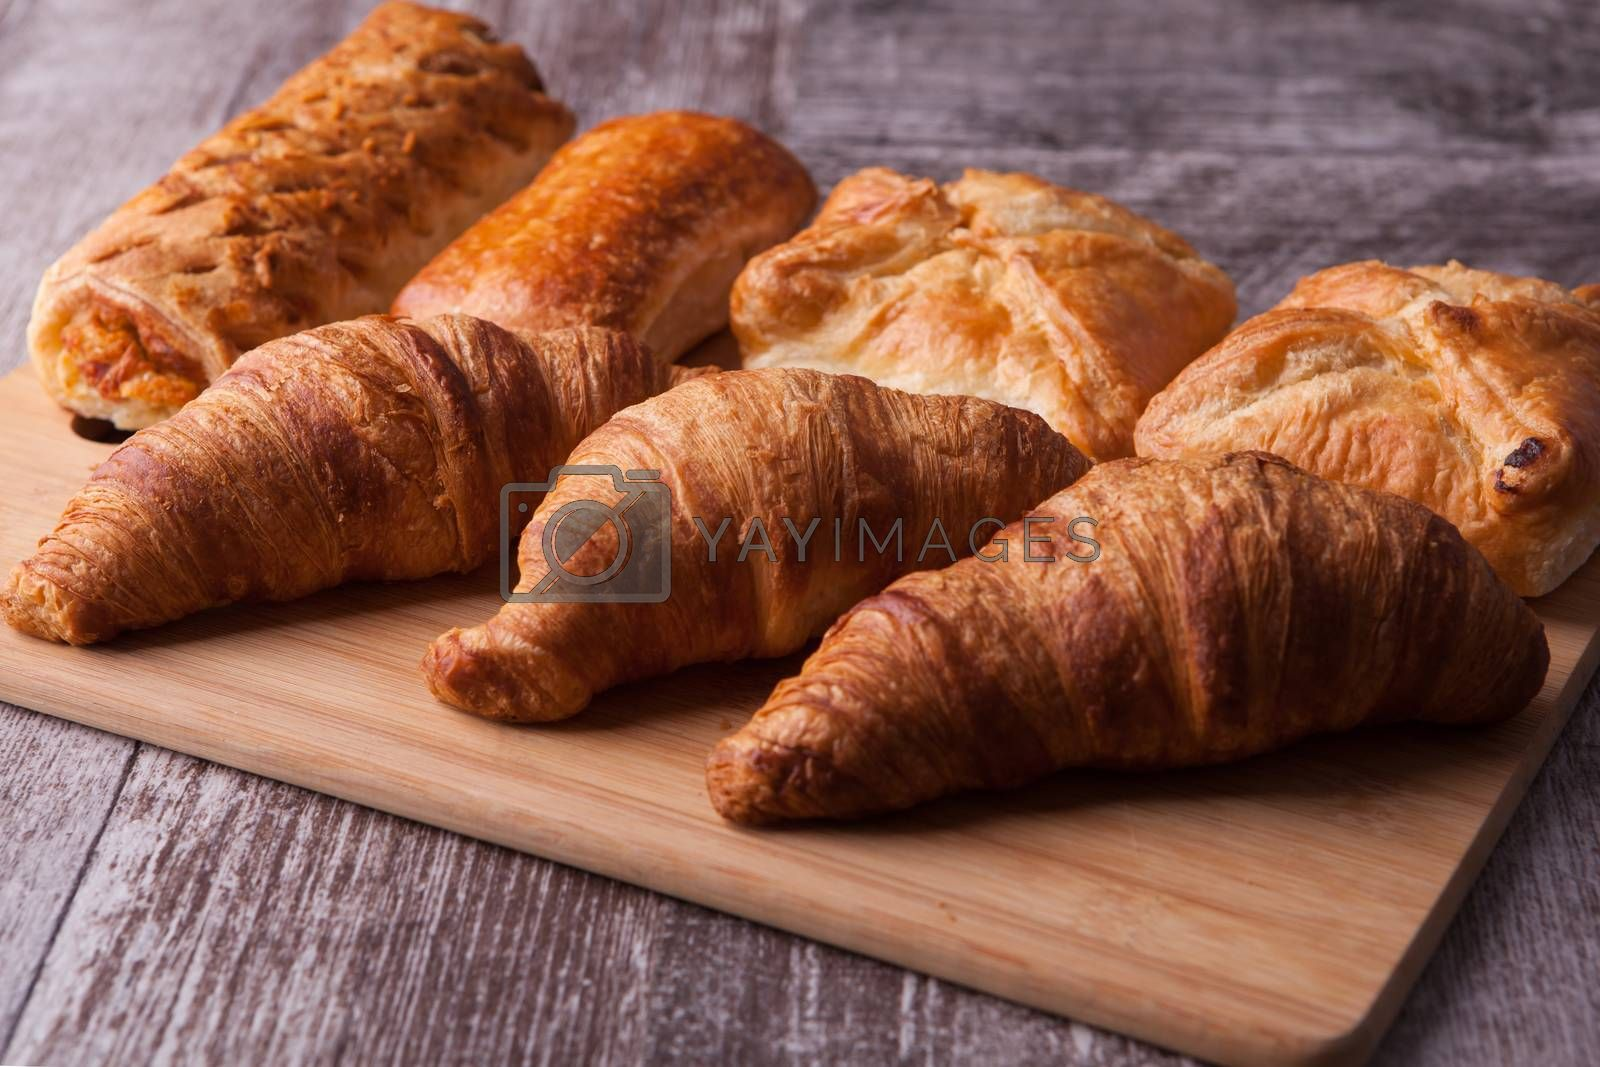 Row of fresh tasty pastry on cutting board by DCStudio